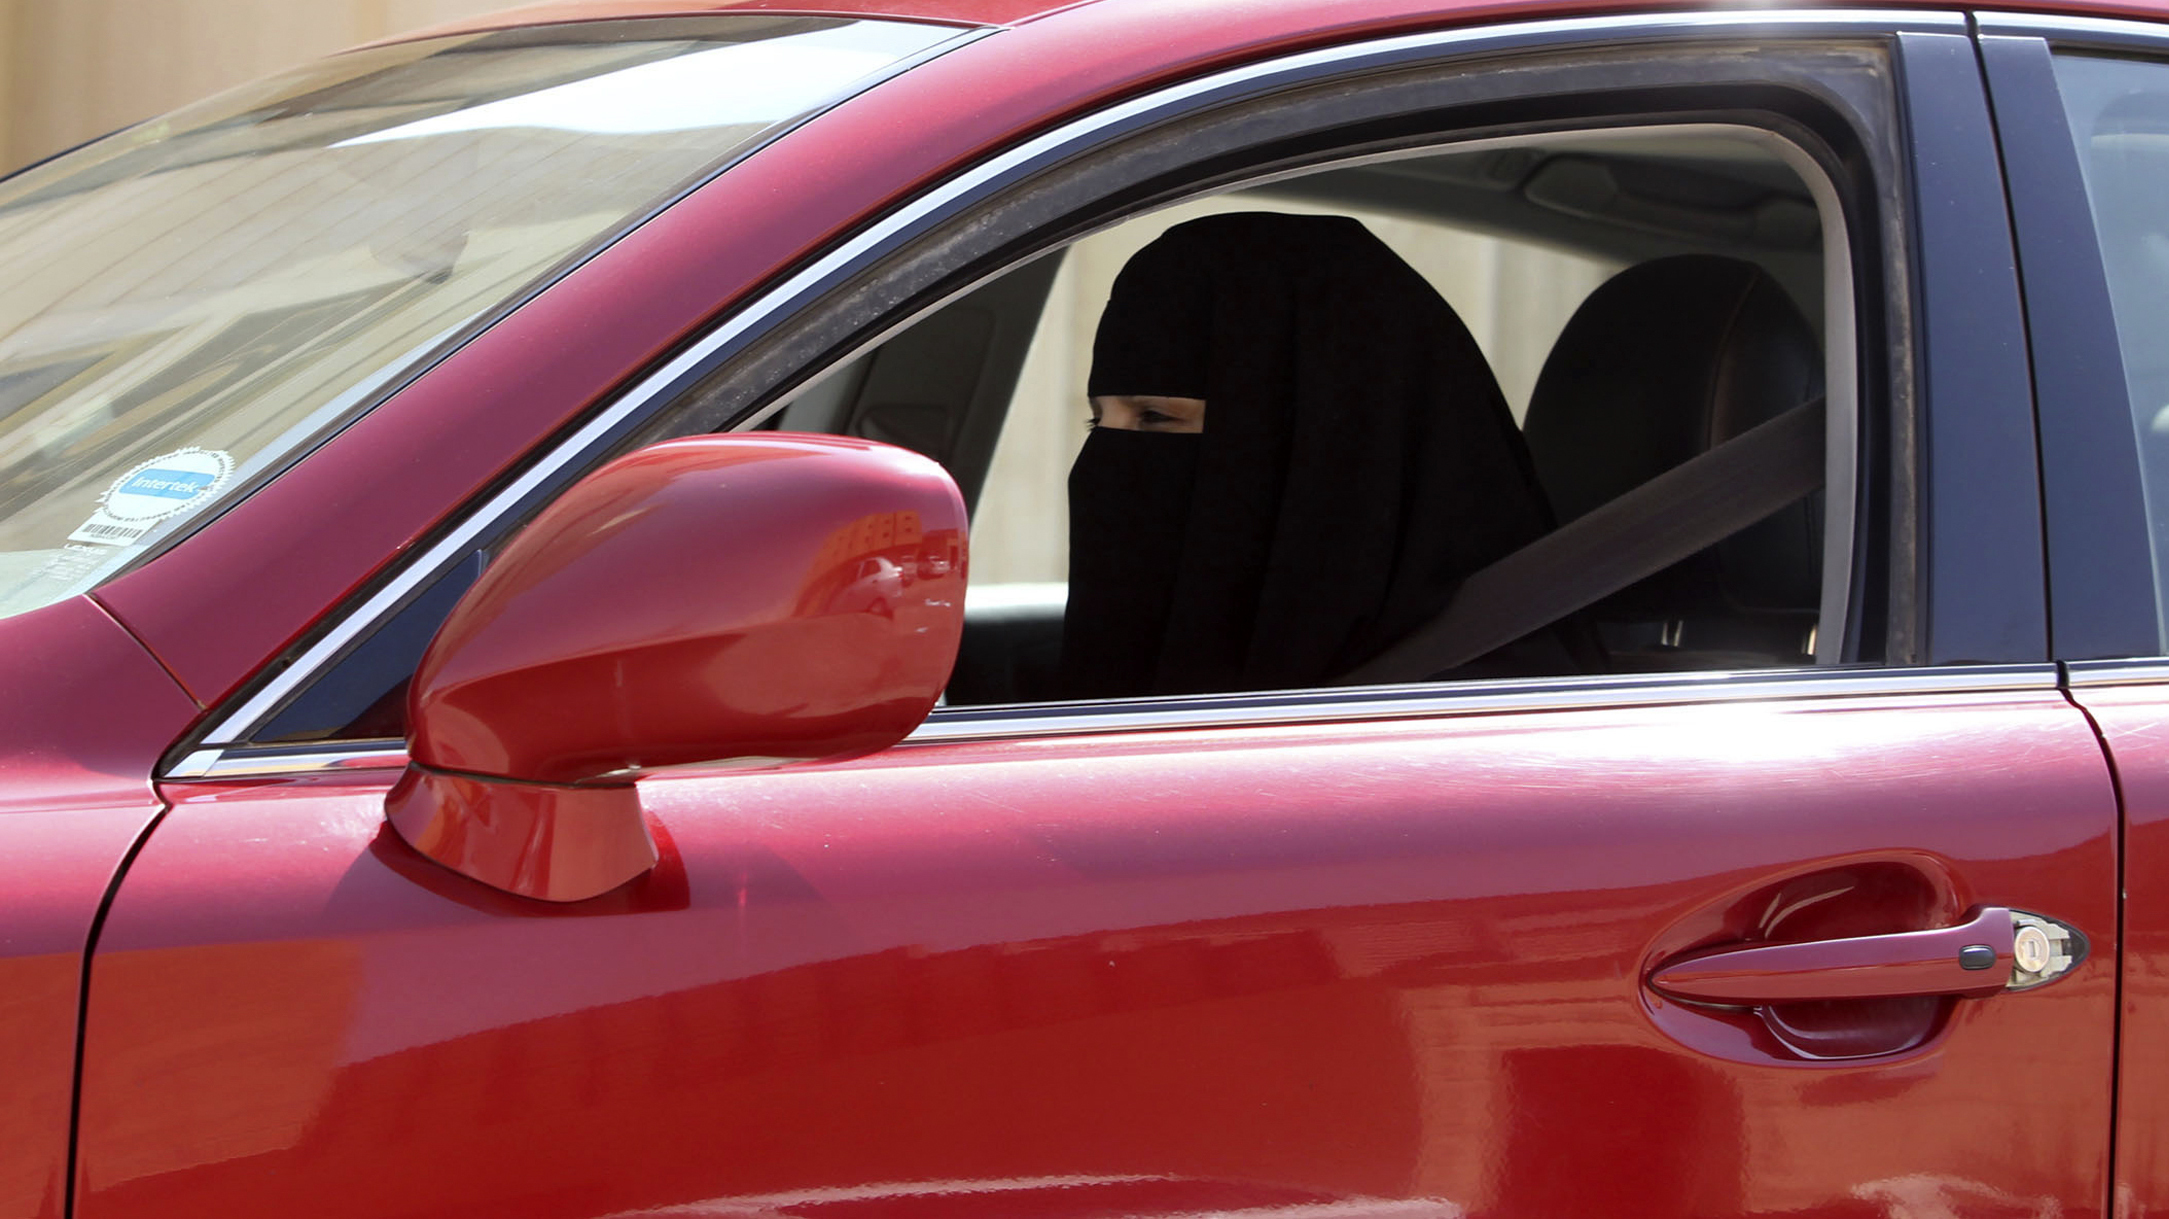 Saudi Women Go For A Spin In Latest Challenge To Driving Ban